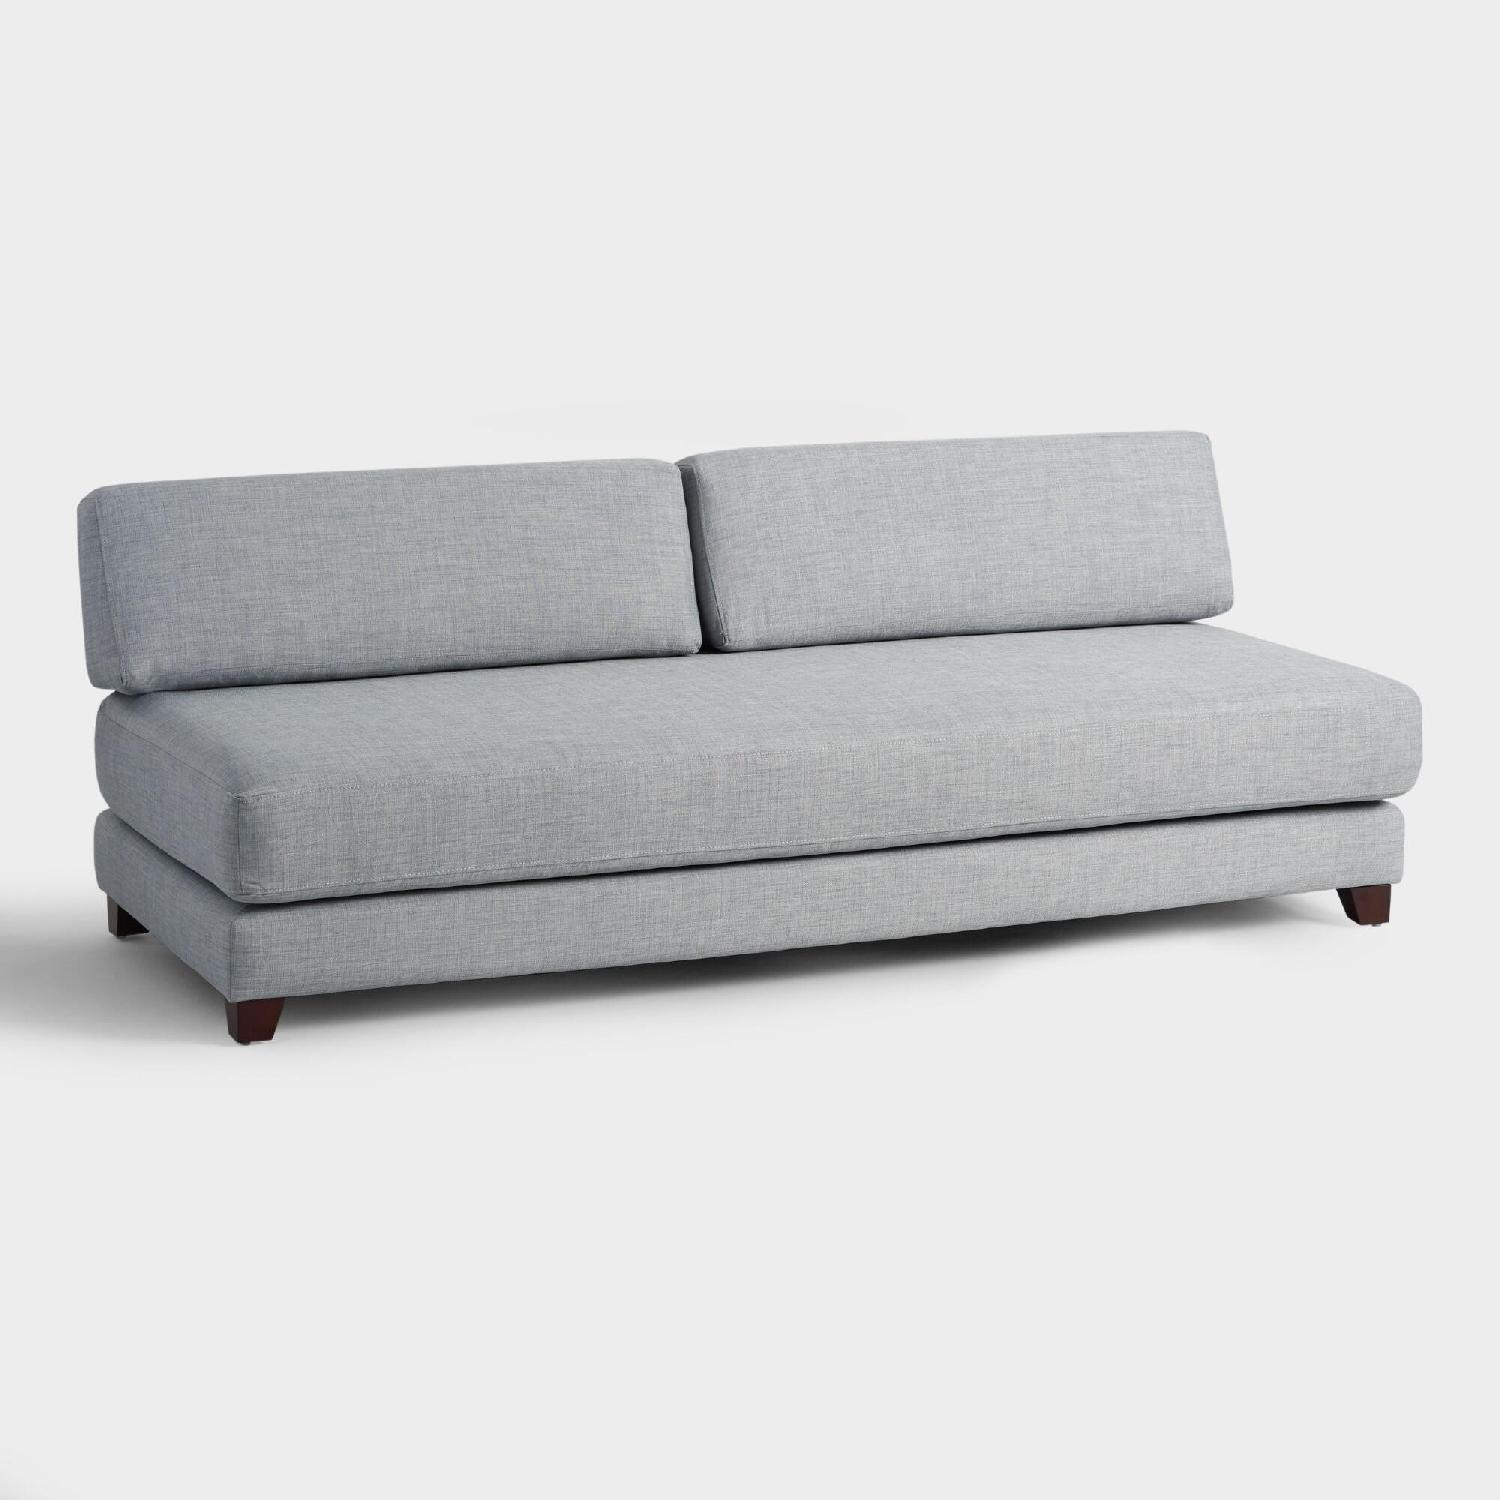 World Market Light Gray Sofa/Duet Daybed - image-0